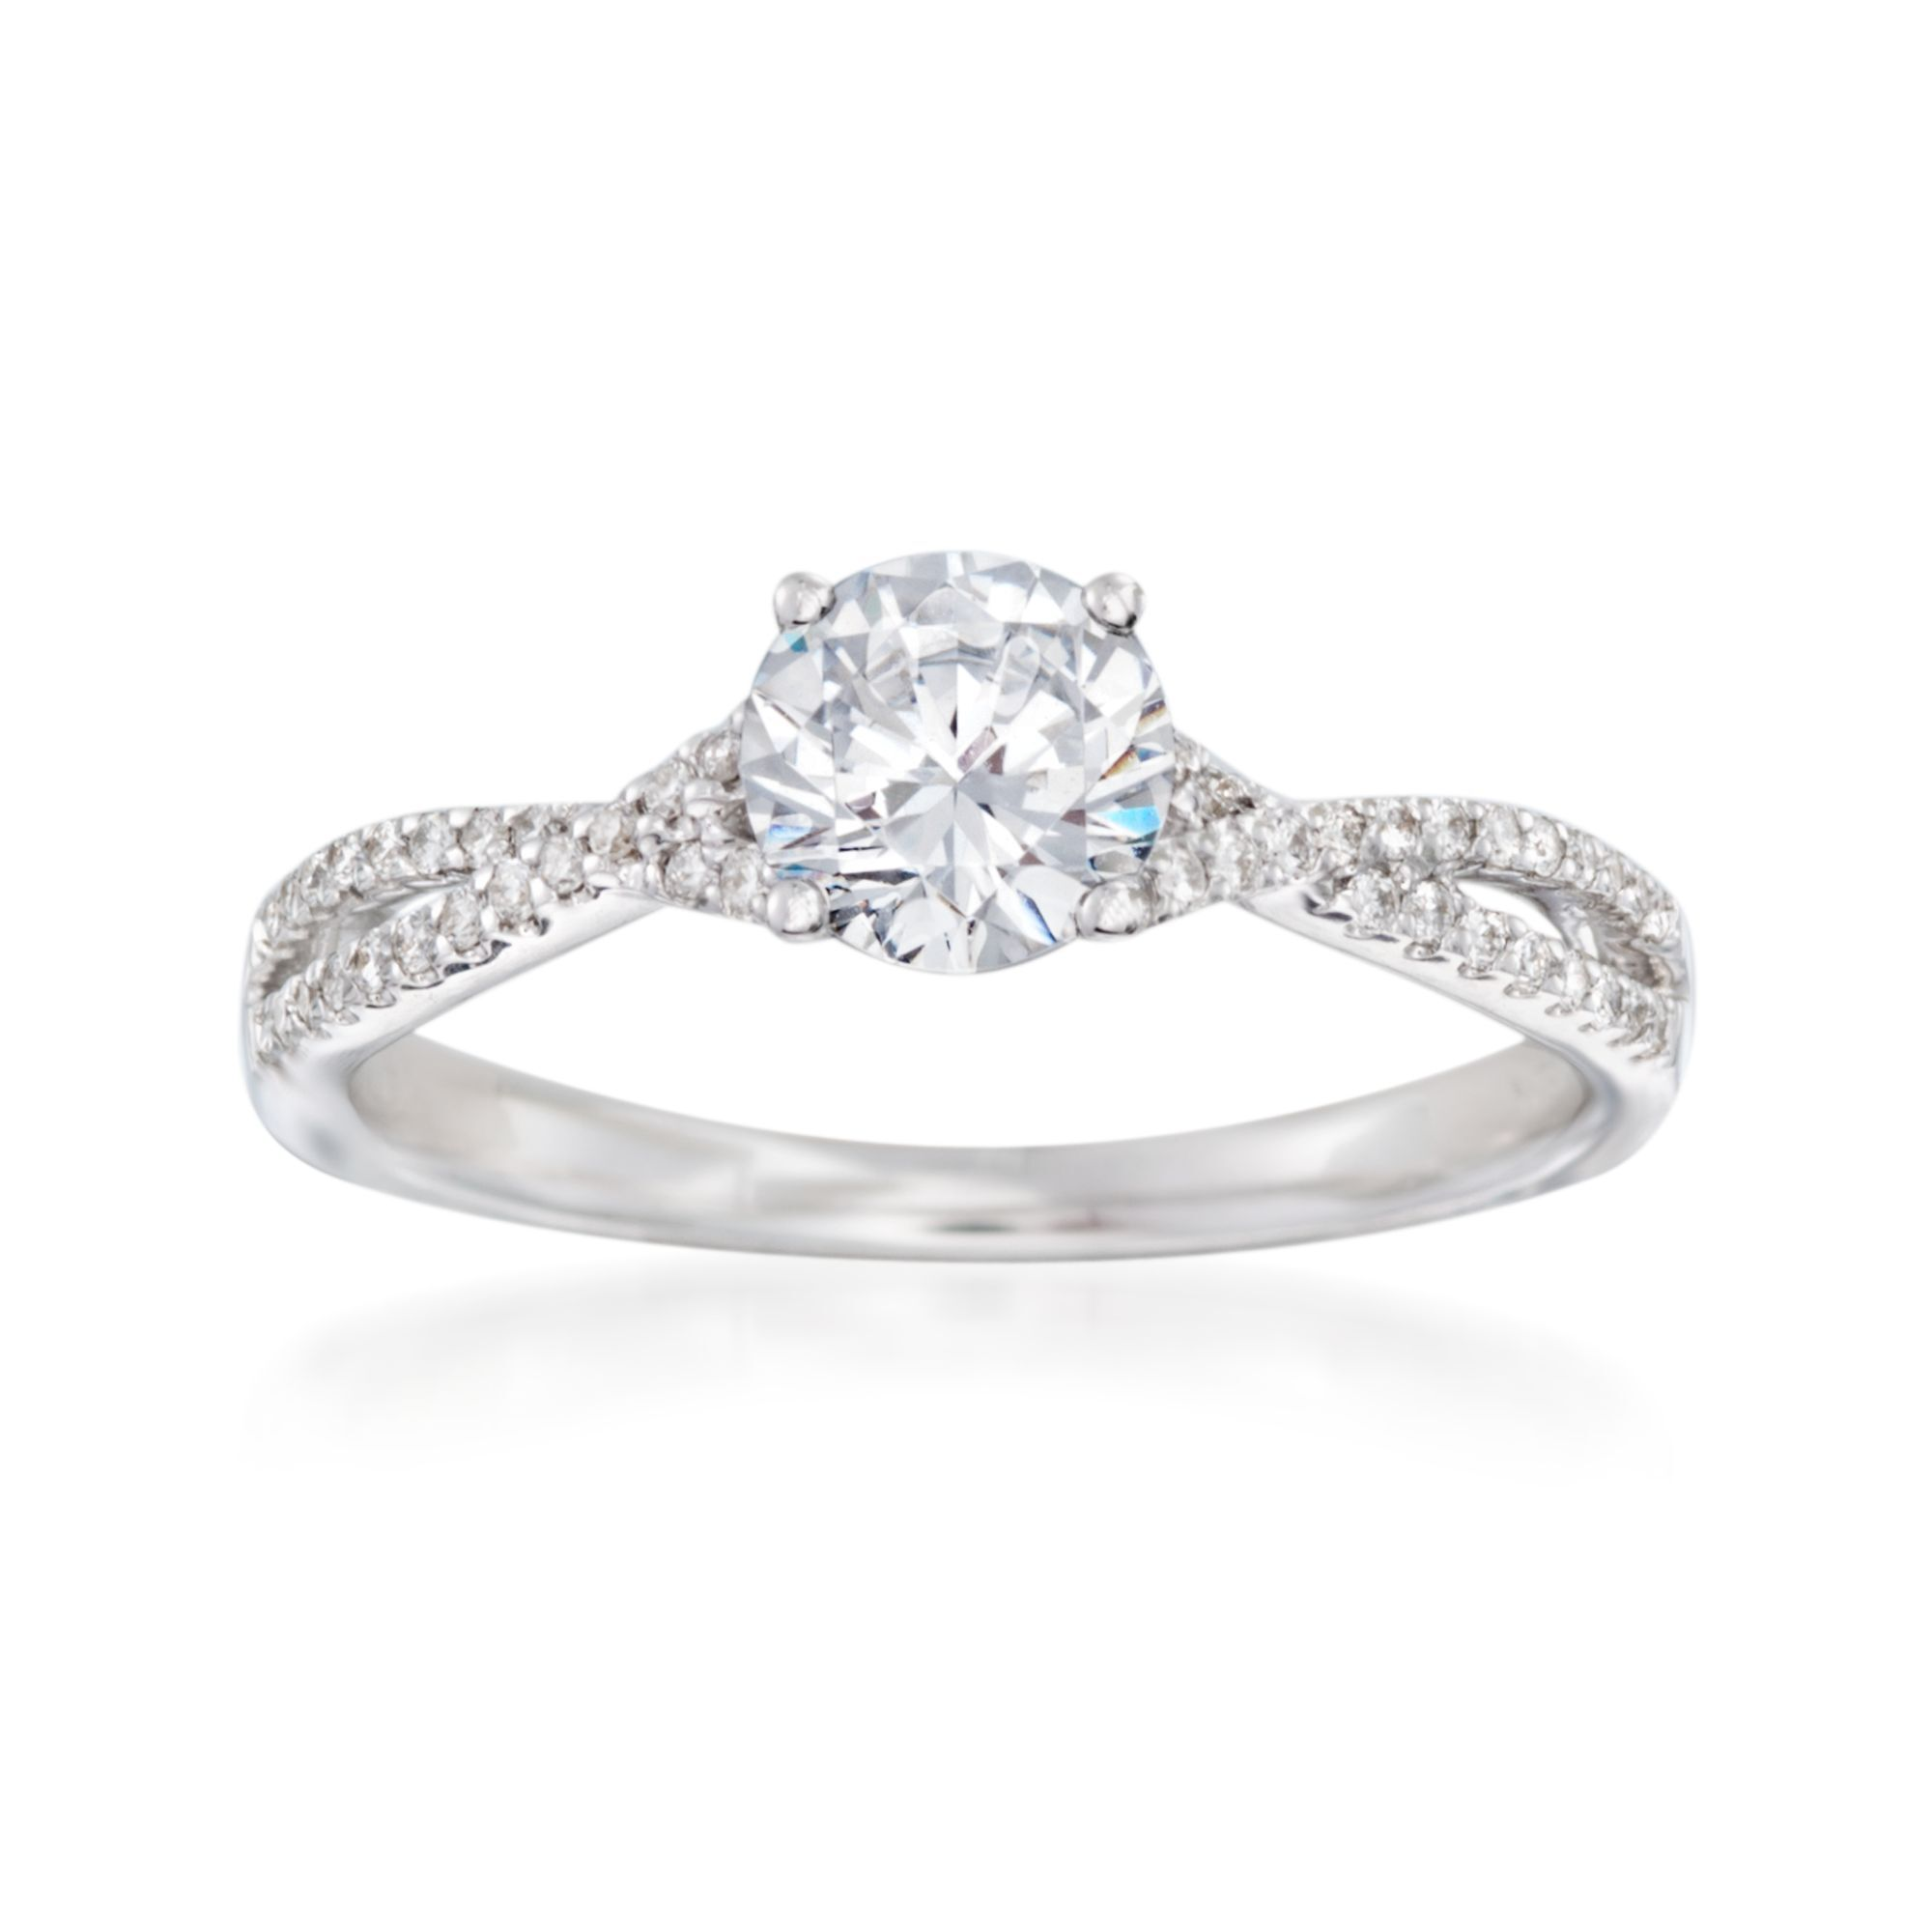 Sterling Silver /& 14k Two-stone and Diamond Mothers Ring Semi-Mount Size 8 Length 0 Width 5